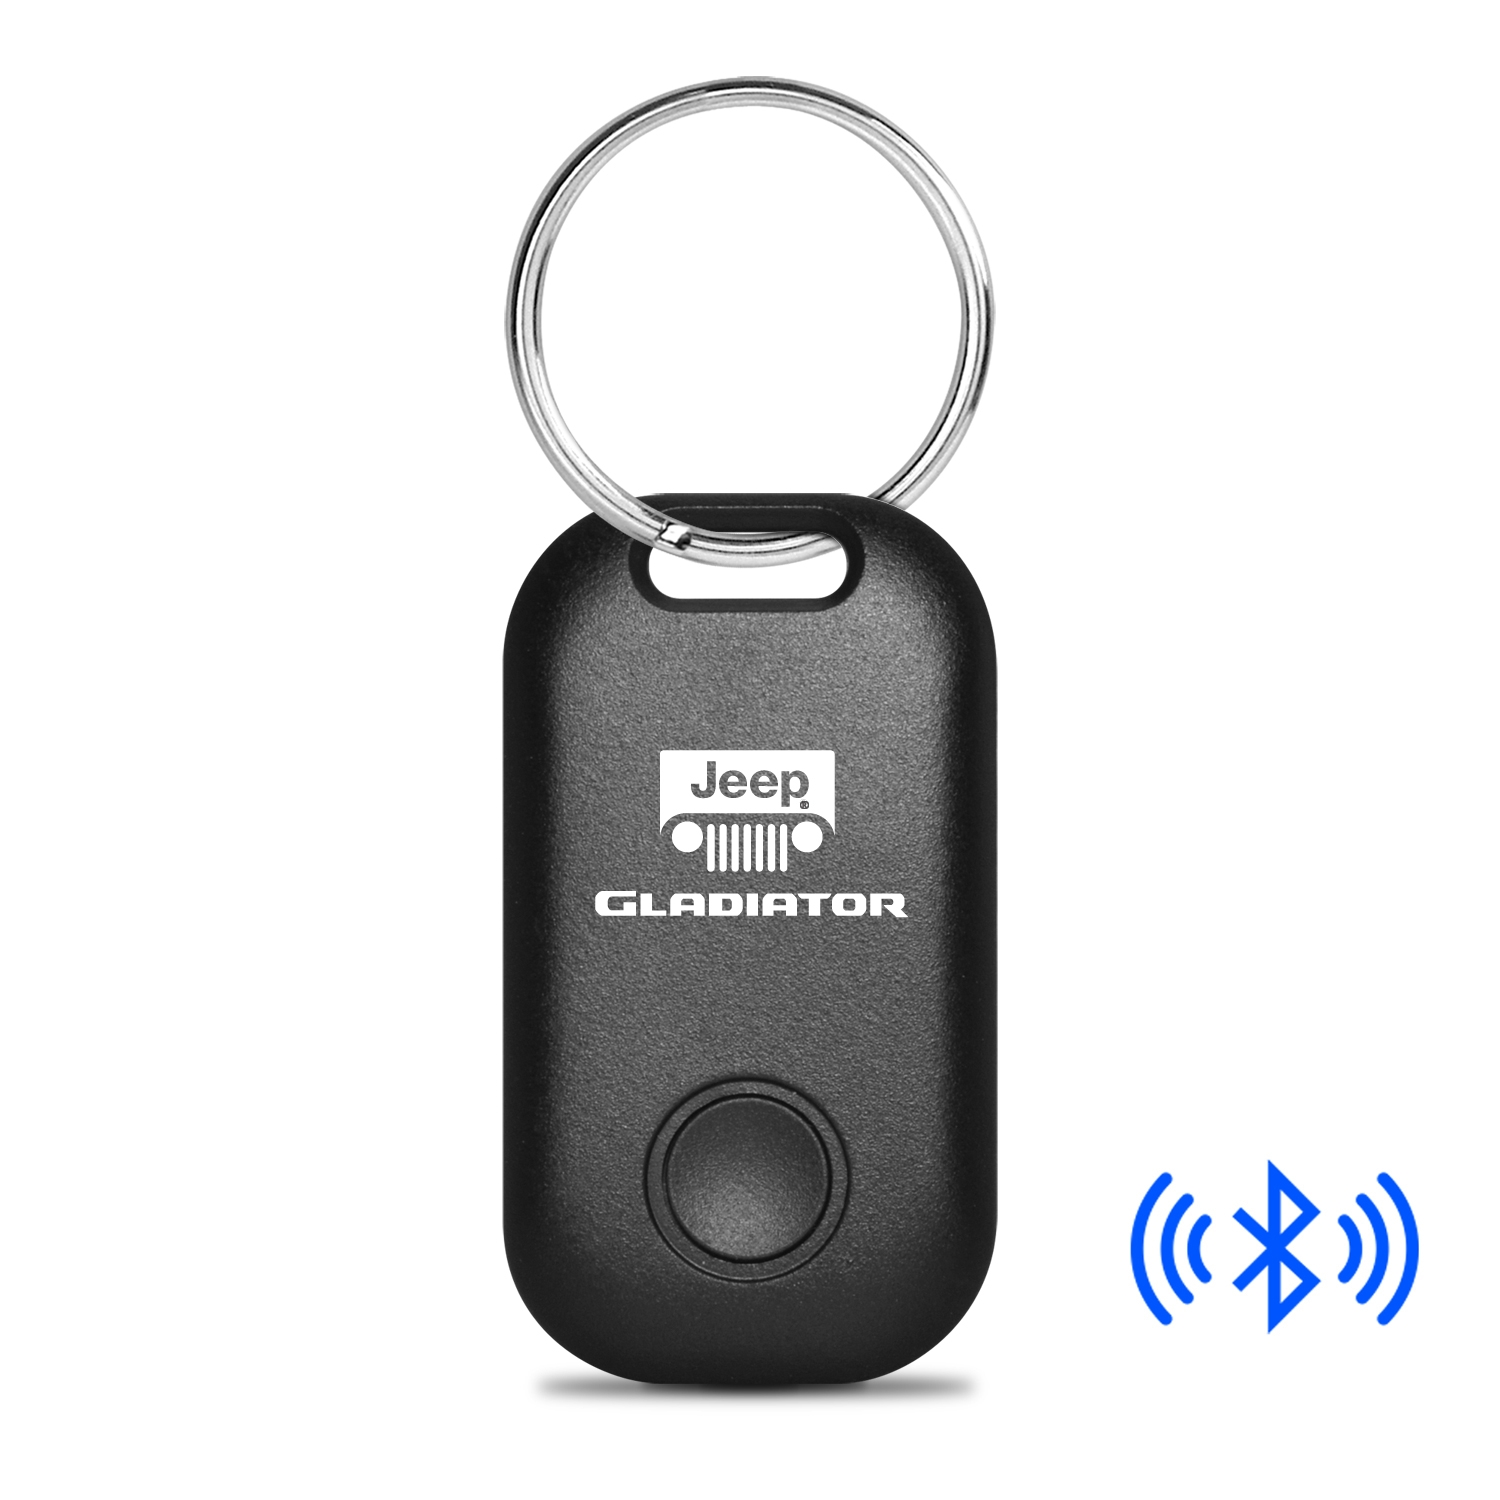 Jeep Gladiator Bluetooth Smart Key Finder Black Key Chain